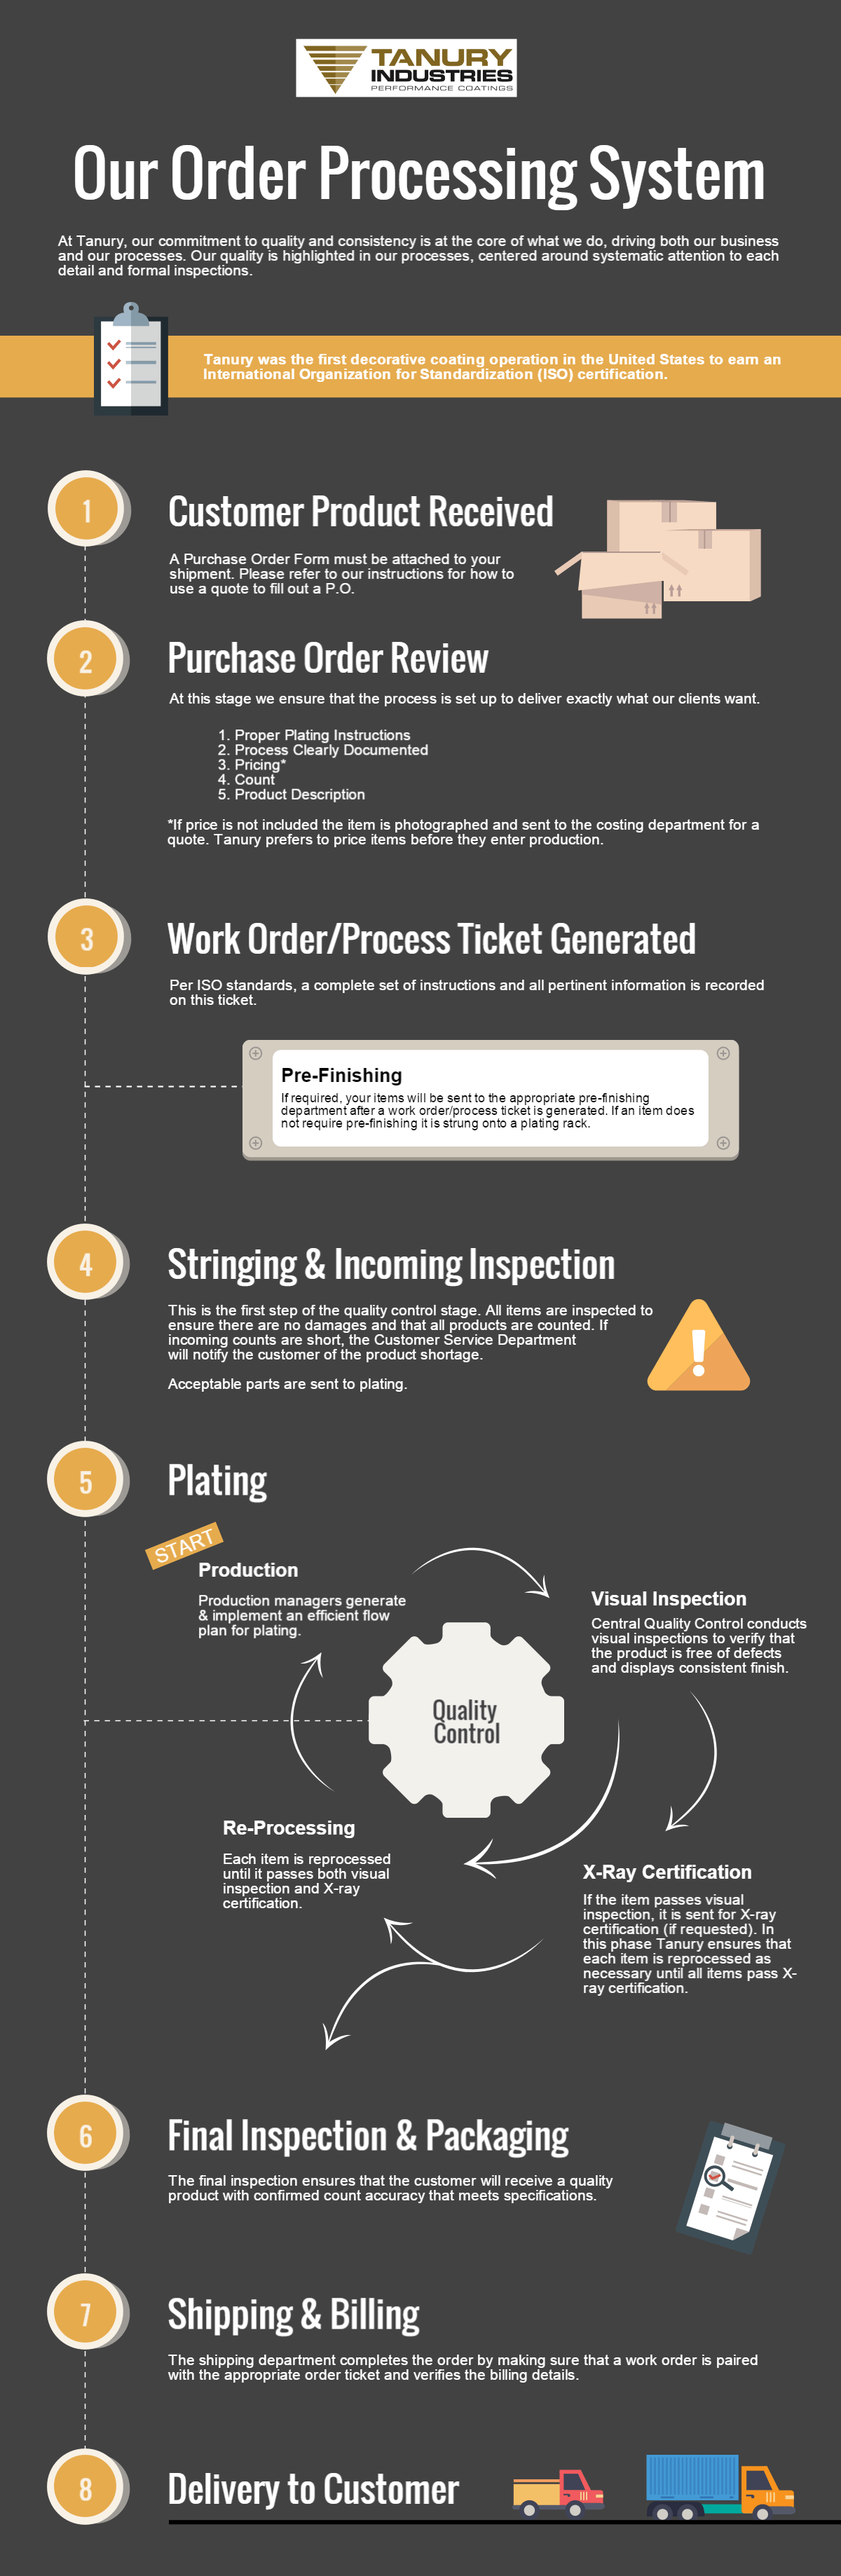 View Our Order Processing Infographic Double Click To Enlarge